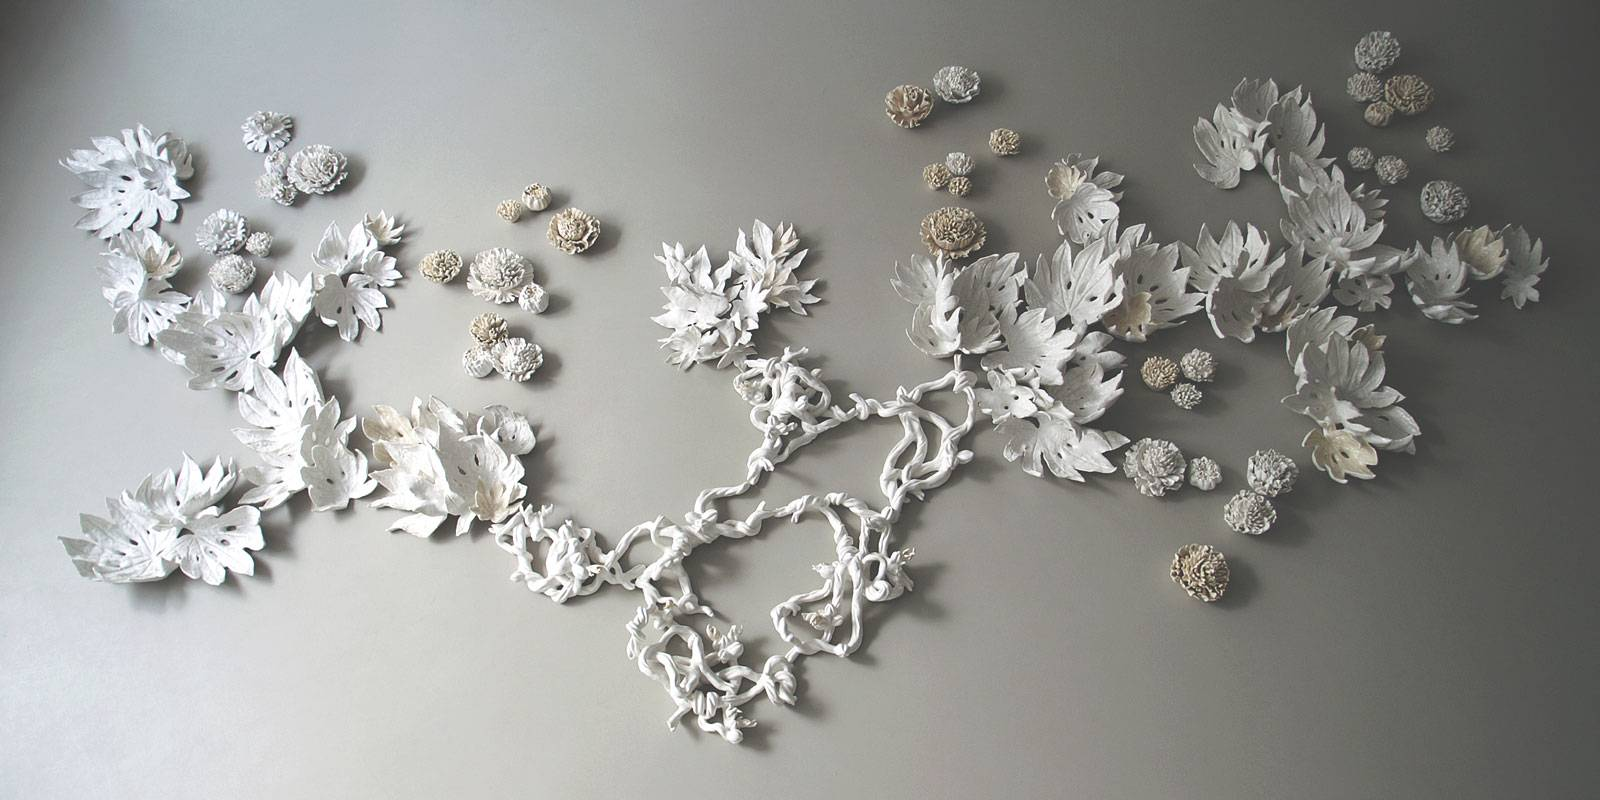 Porcelain Wall Art Installations And Sculptures